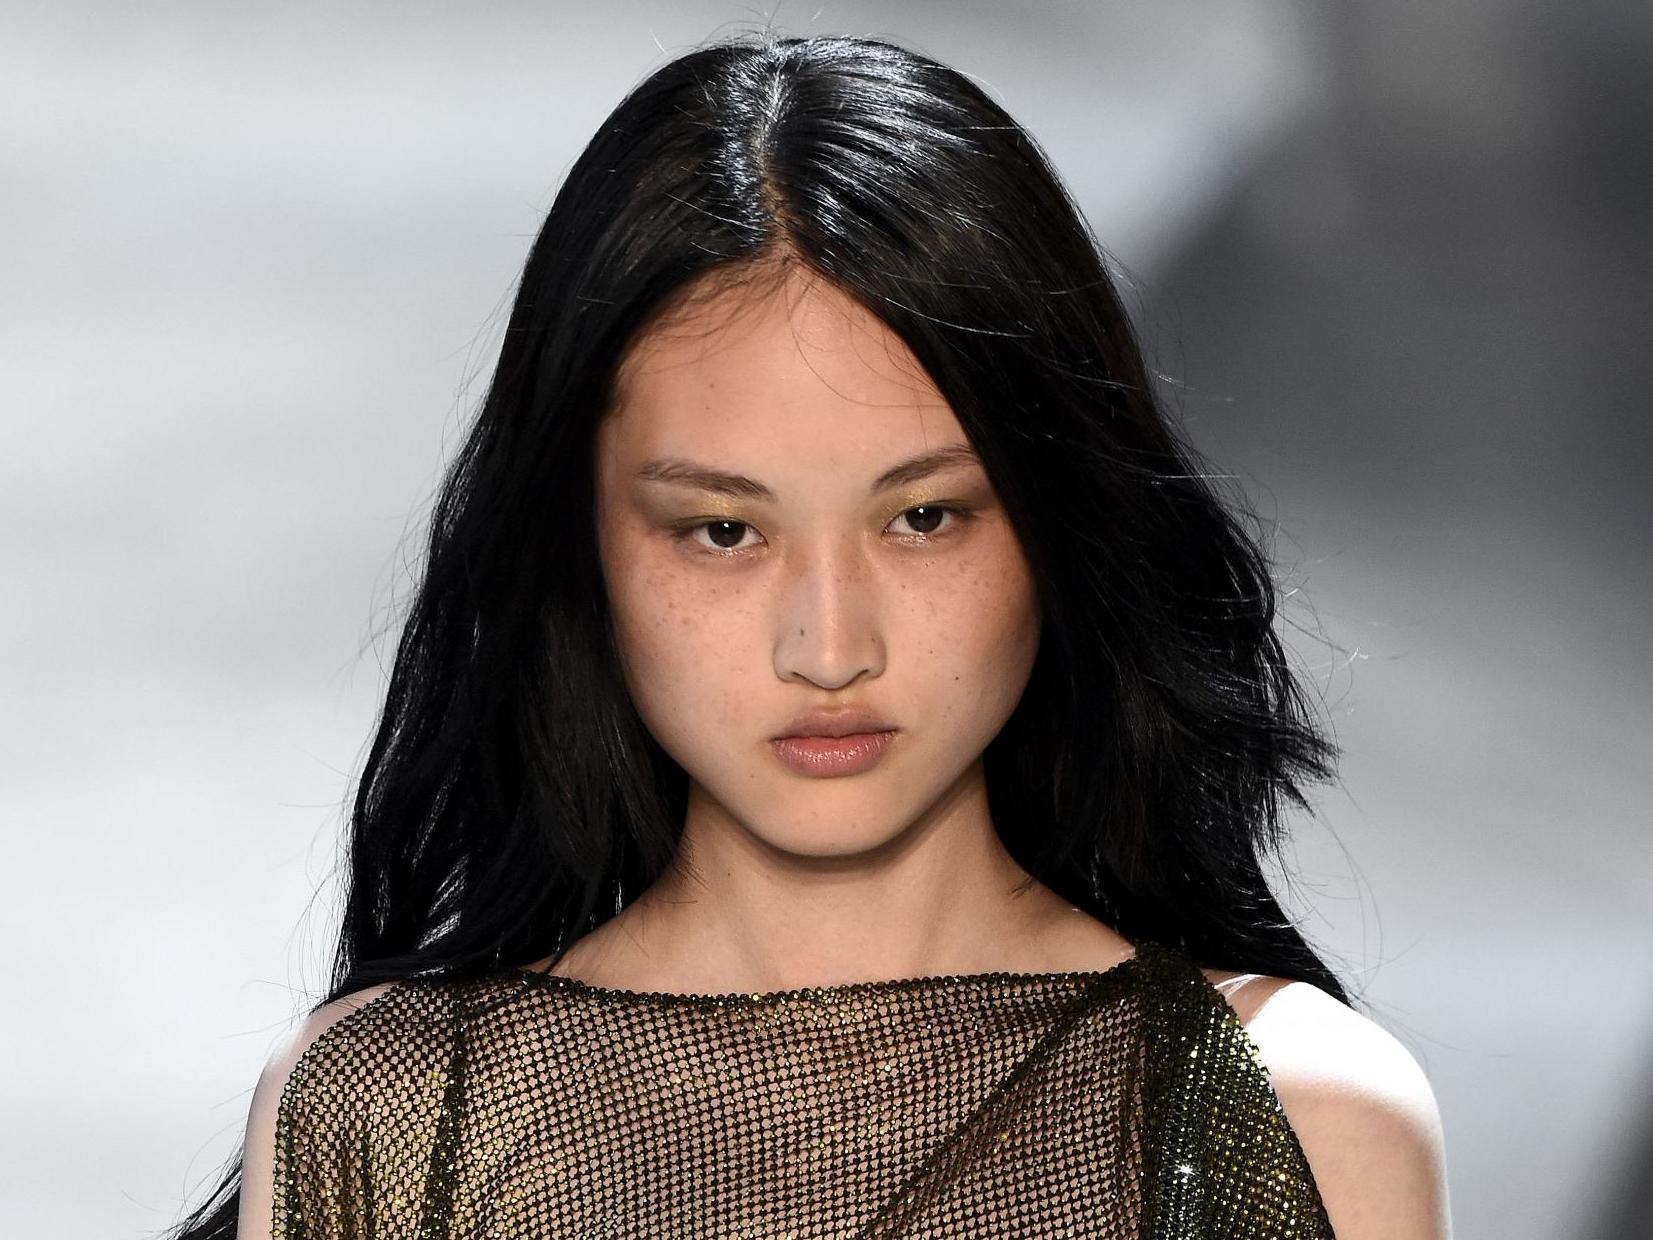 66f248fb Zara campaign featuring model with freckles sparks debate in China